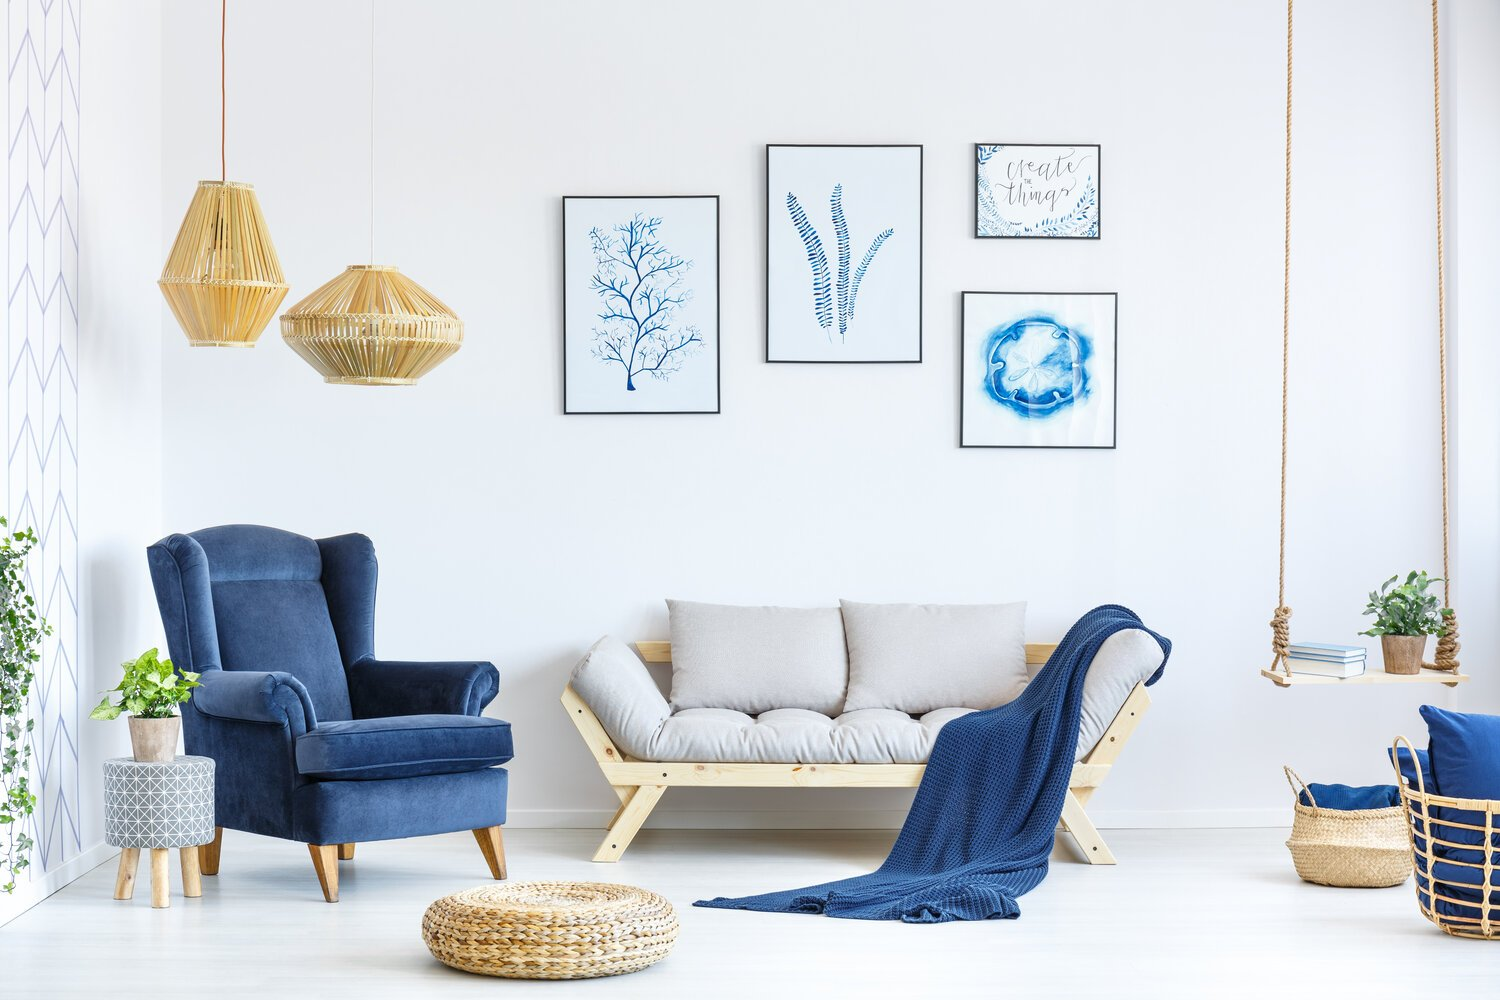 What is the Best Furniture for a Small Living Room?